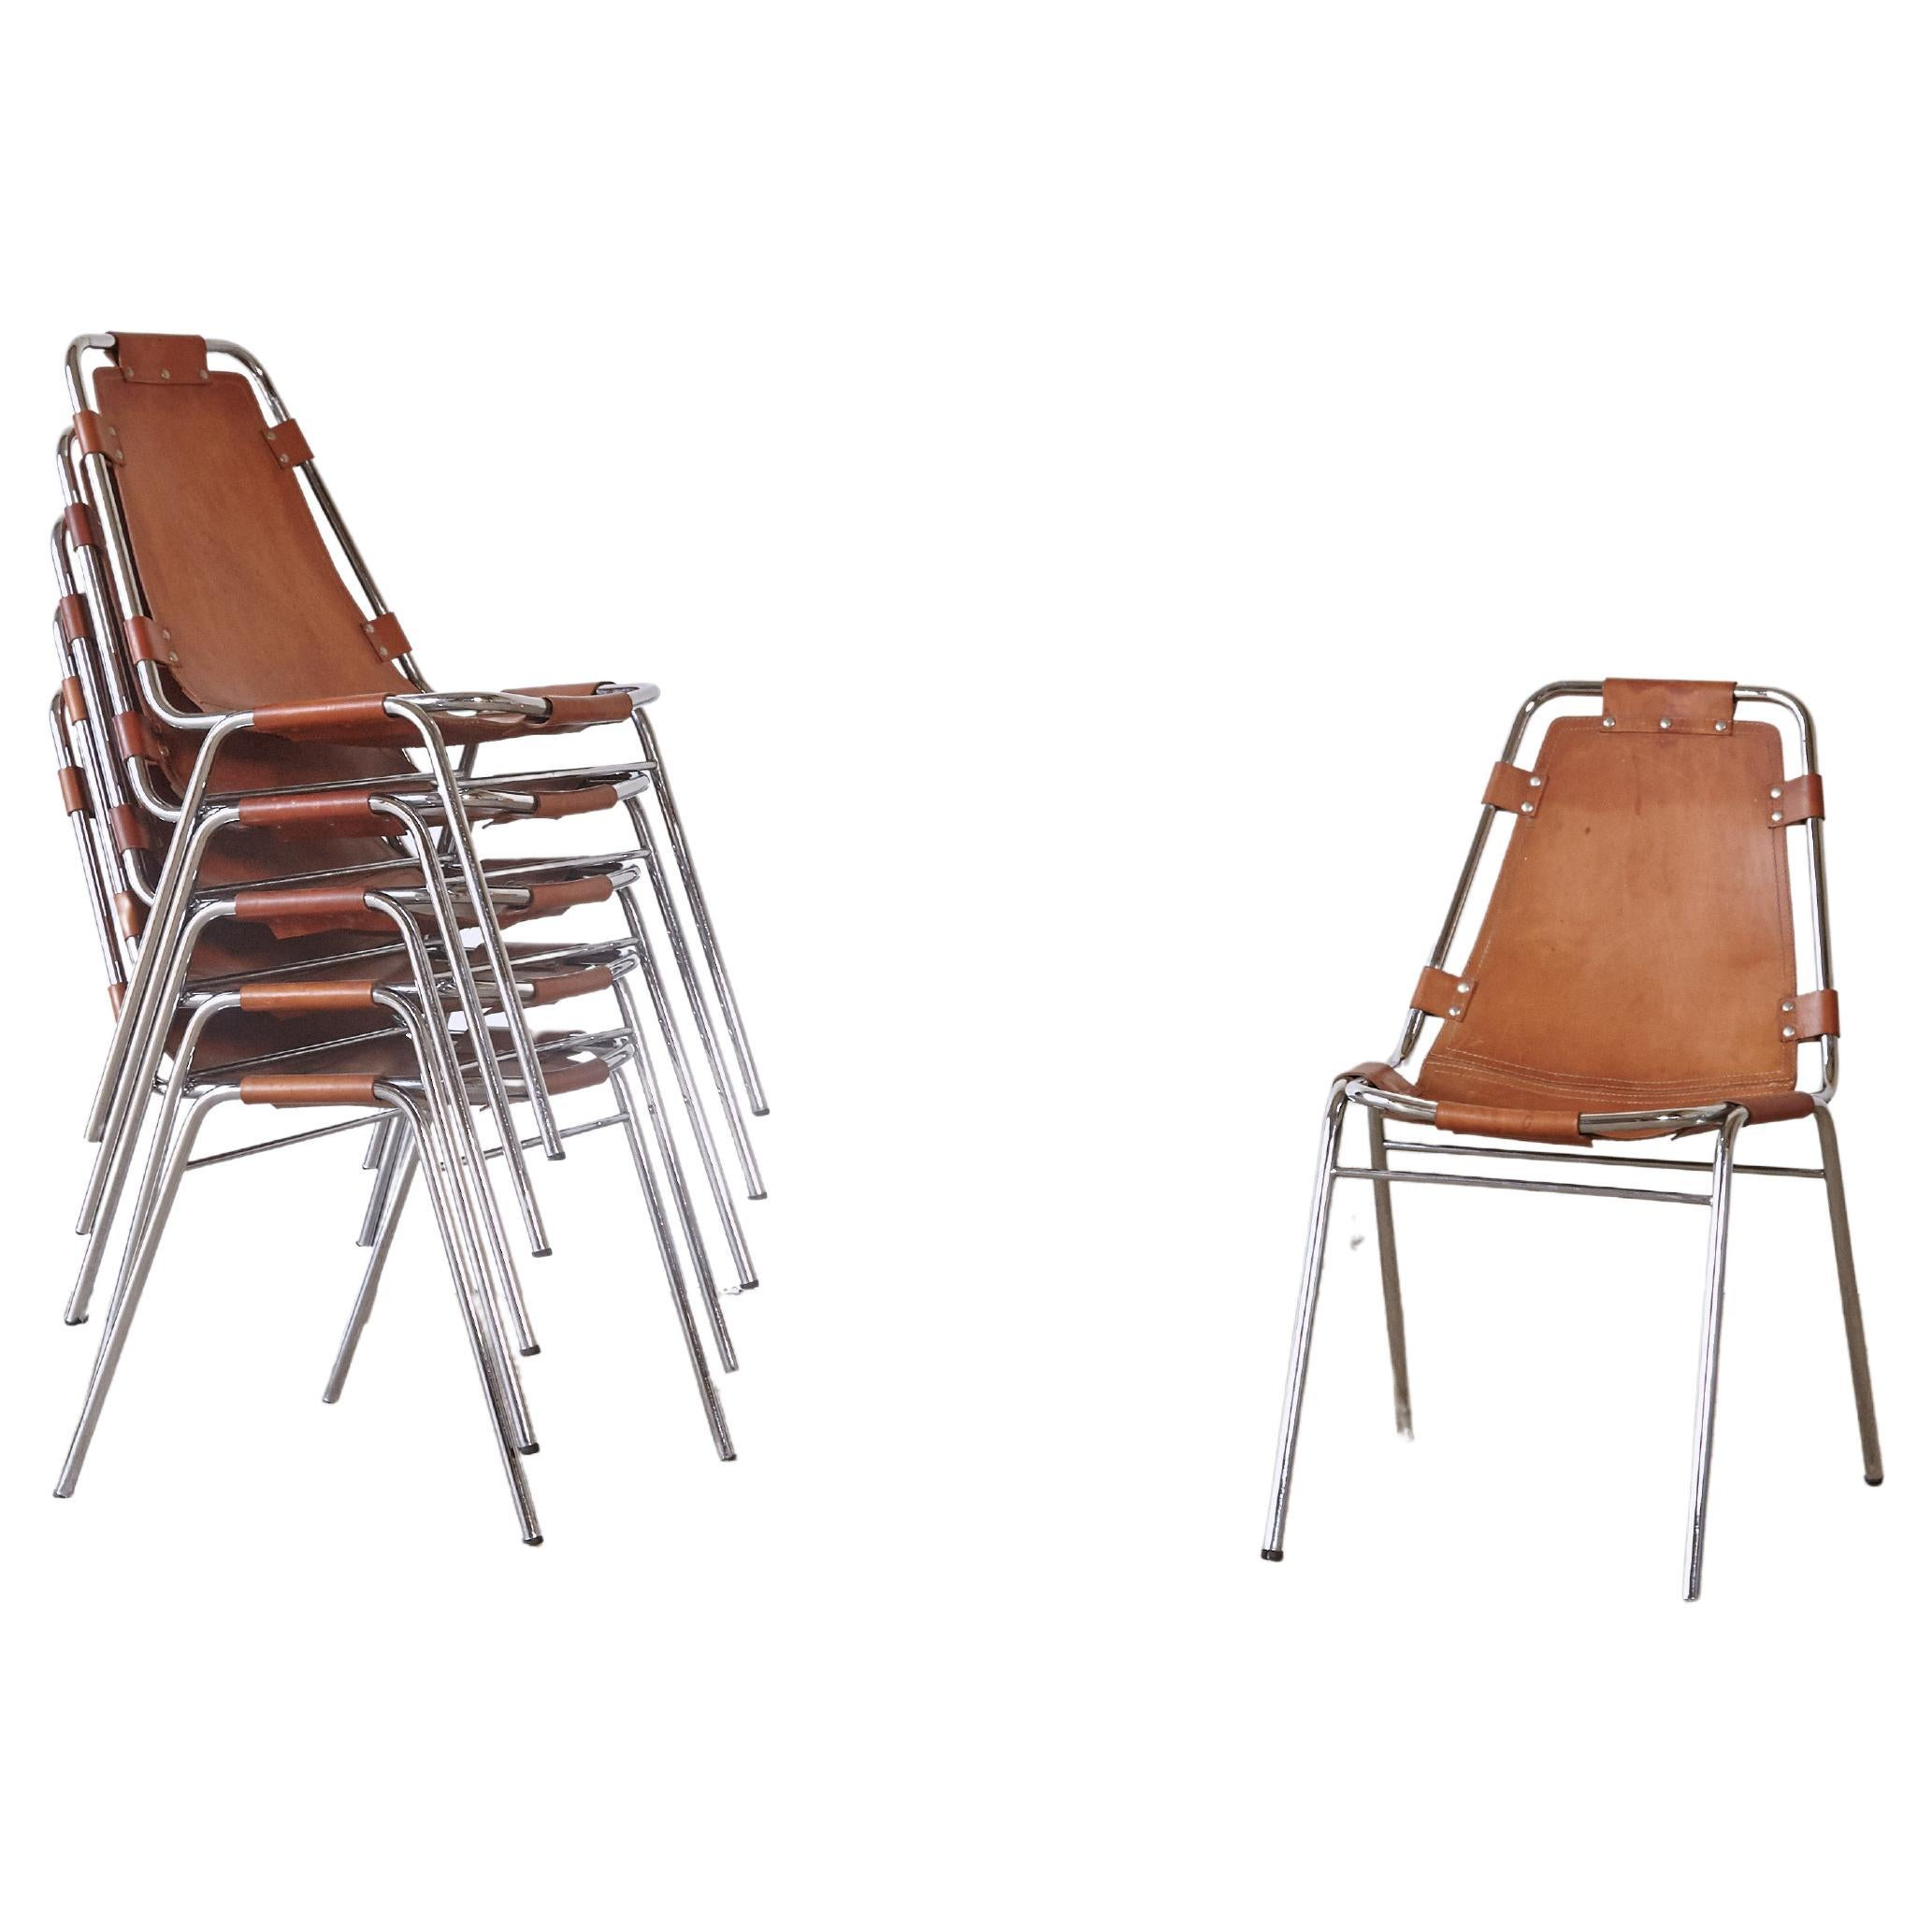 Set of Six 'Les Arcs' Chairs Selected by Charlotte Perriand, Italy/France, 1970s